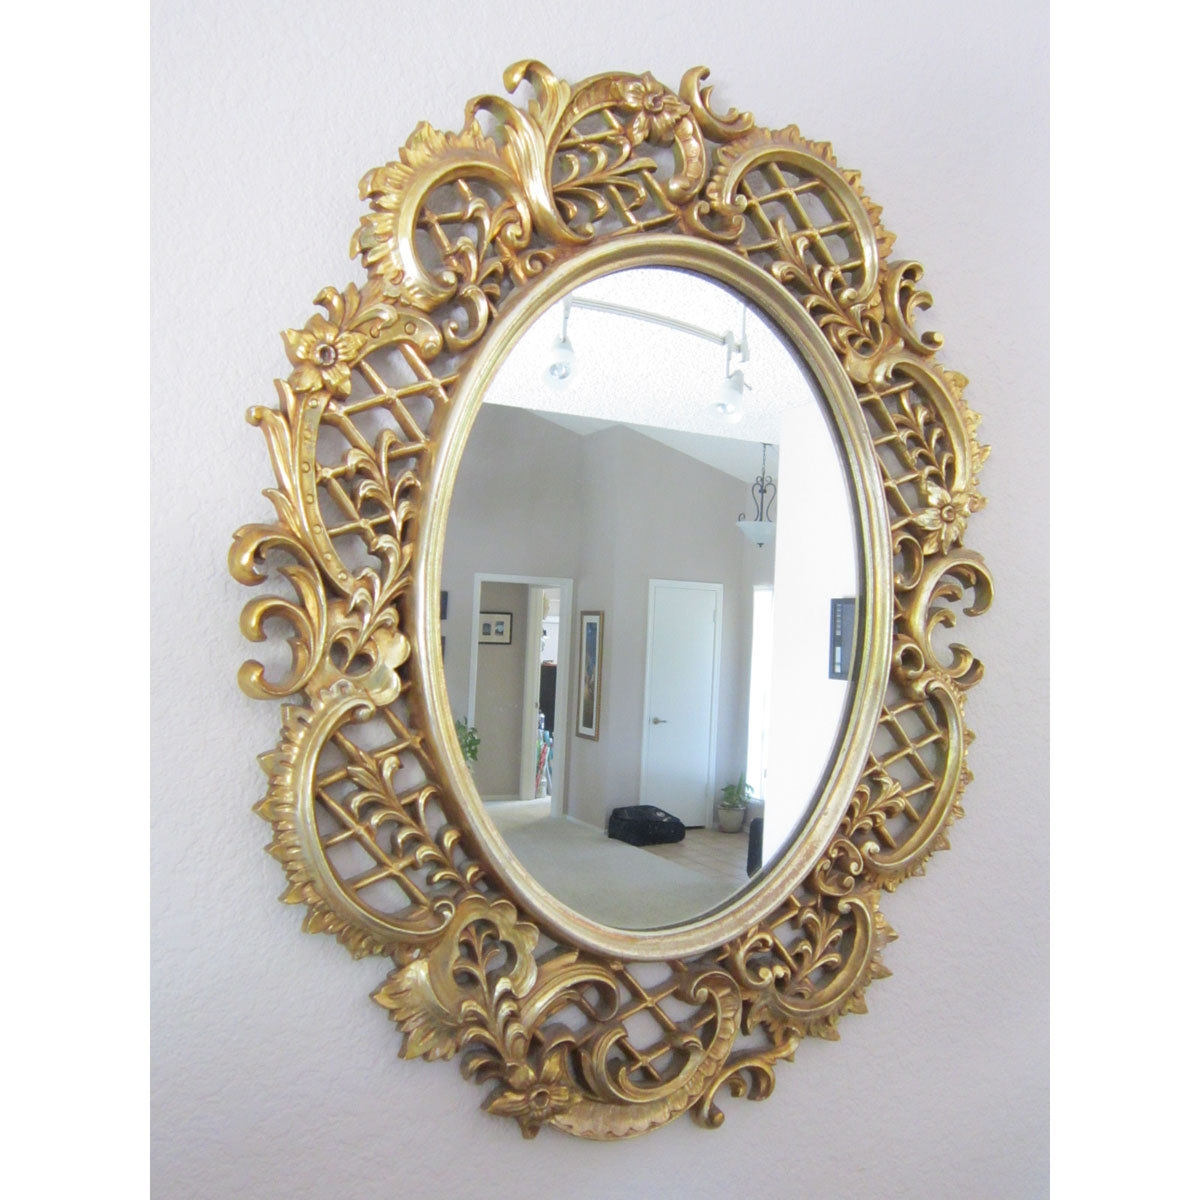 Sale Vintage Decorative Mirror Large Framed Mirror Circa Inside Large Vintage Mirrors For Sale (Image 12 of 15)